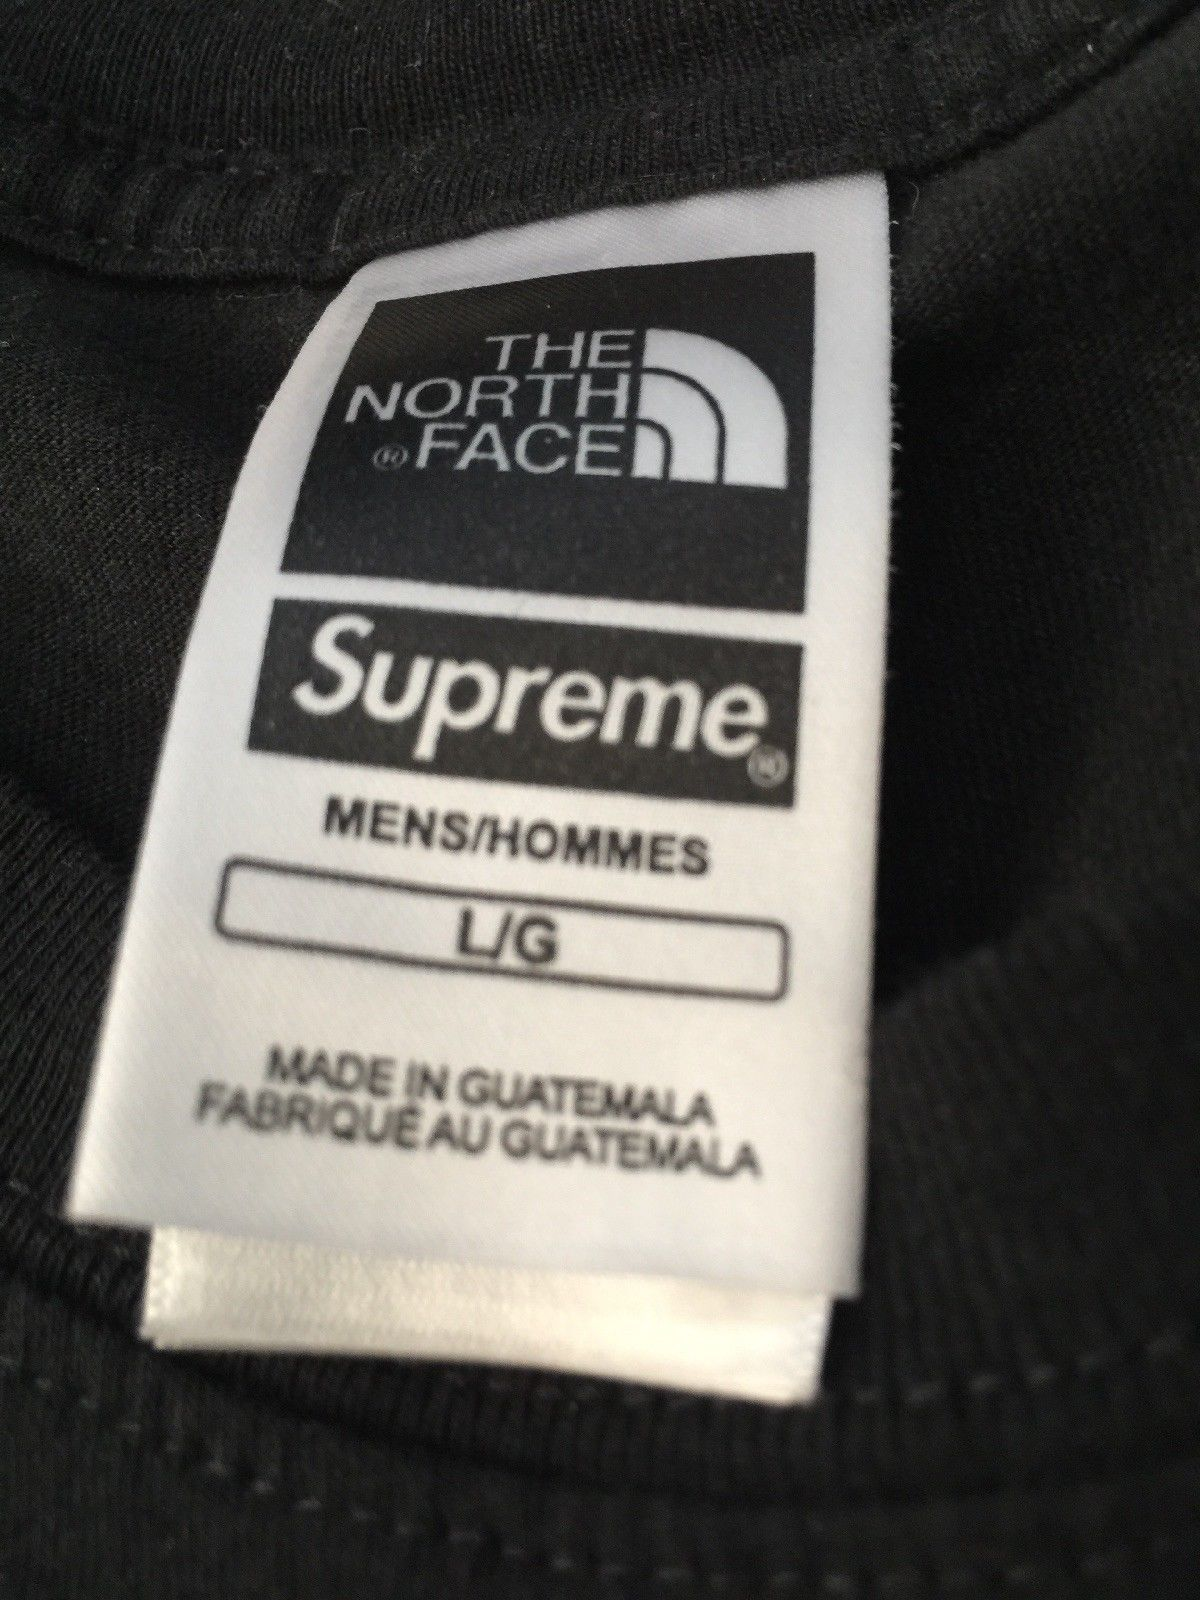 64fe18ae5 Details about Supreme x The North Face Metallic Logo Chrome T-Shirt ...